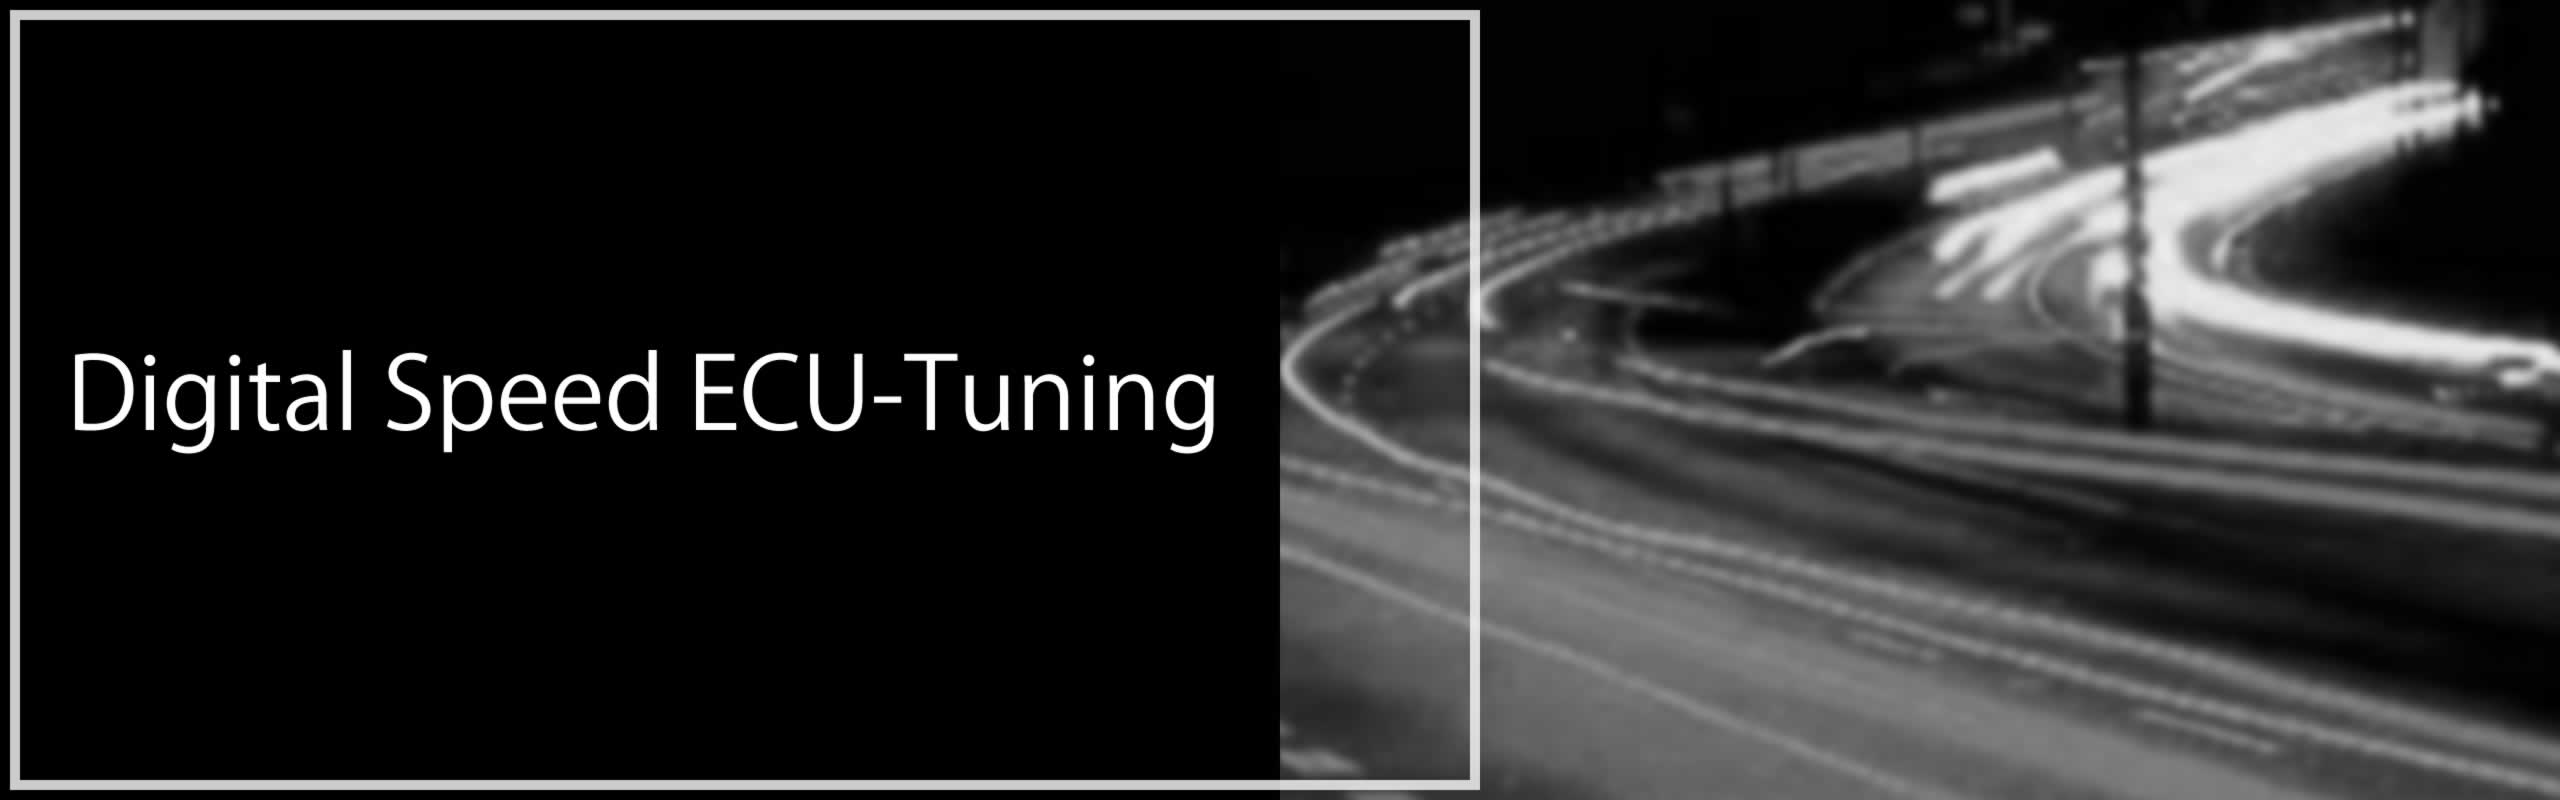 Digital Speed ECU-Tuning